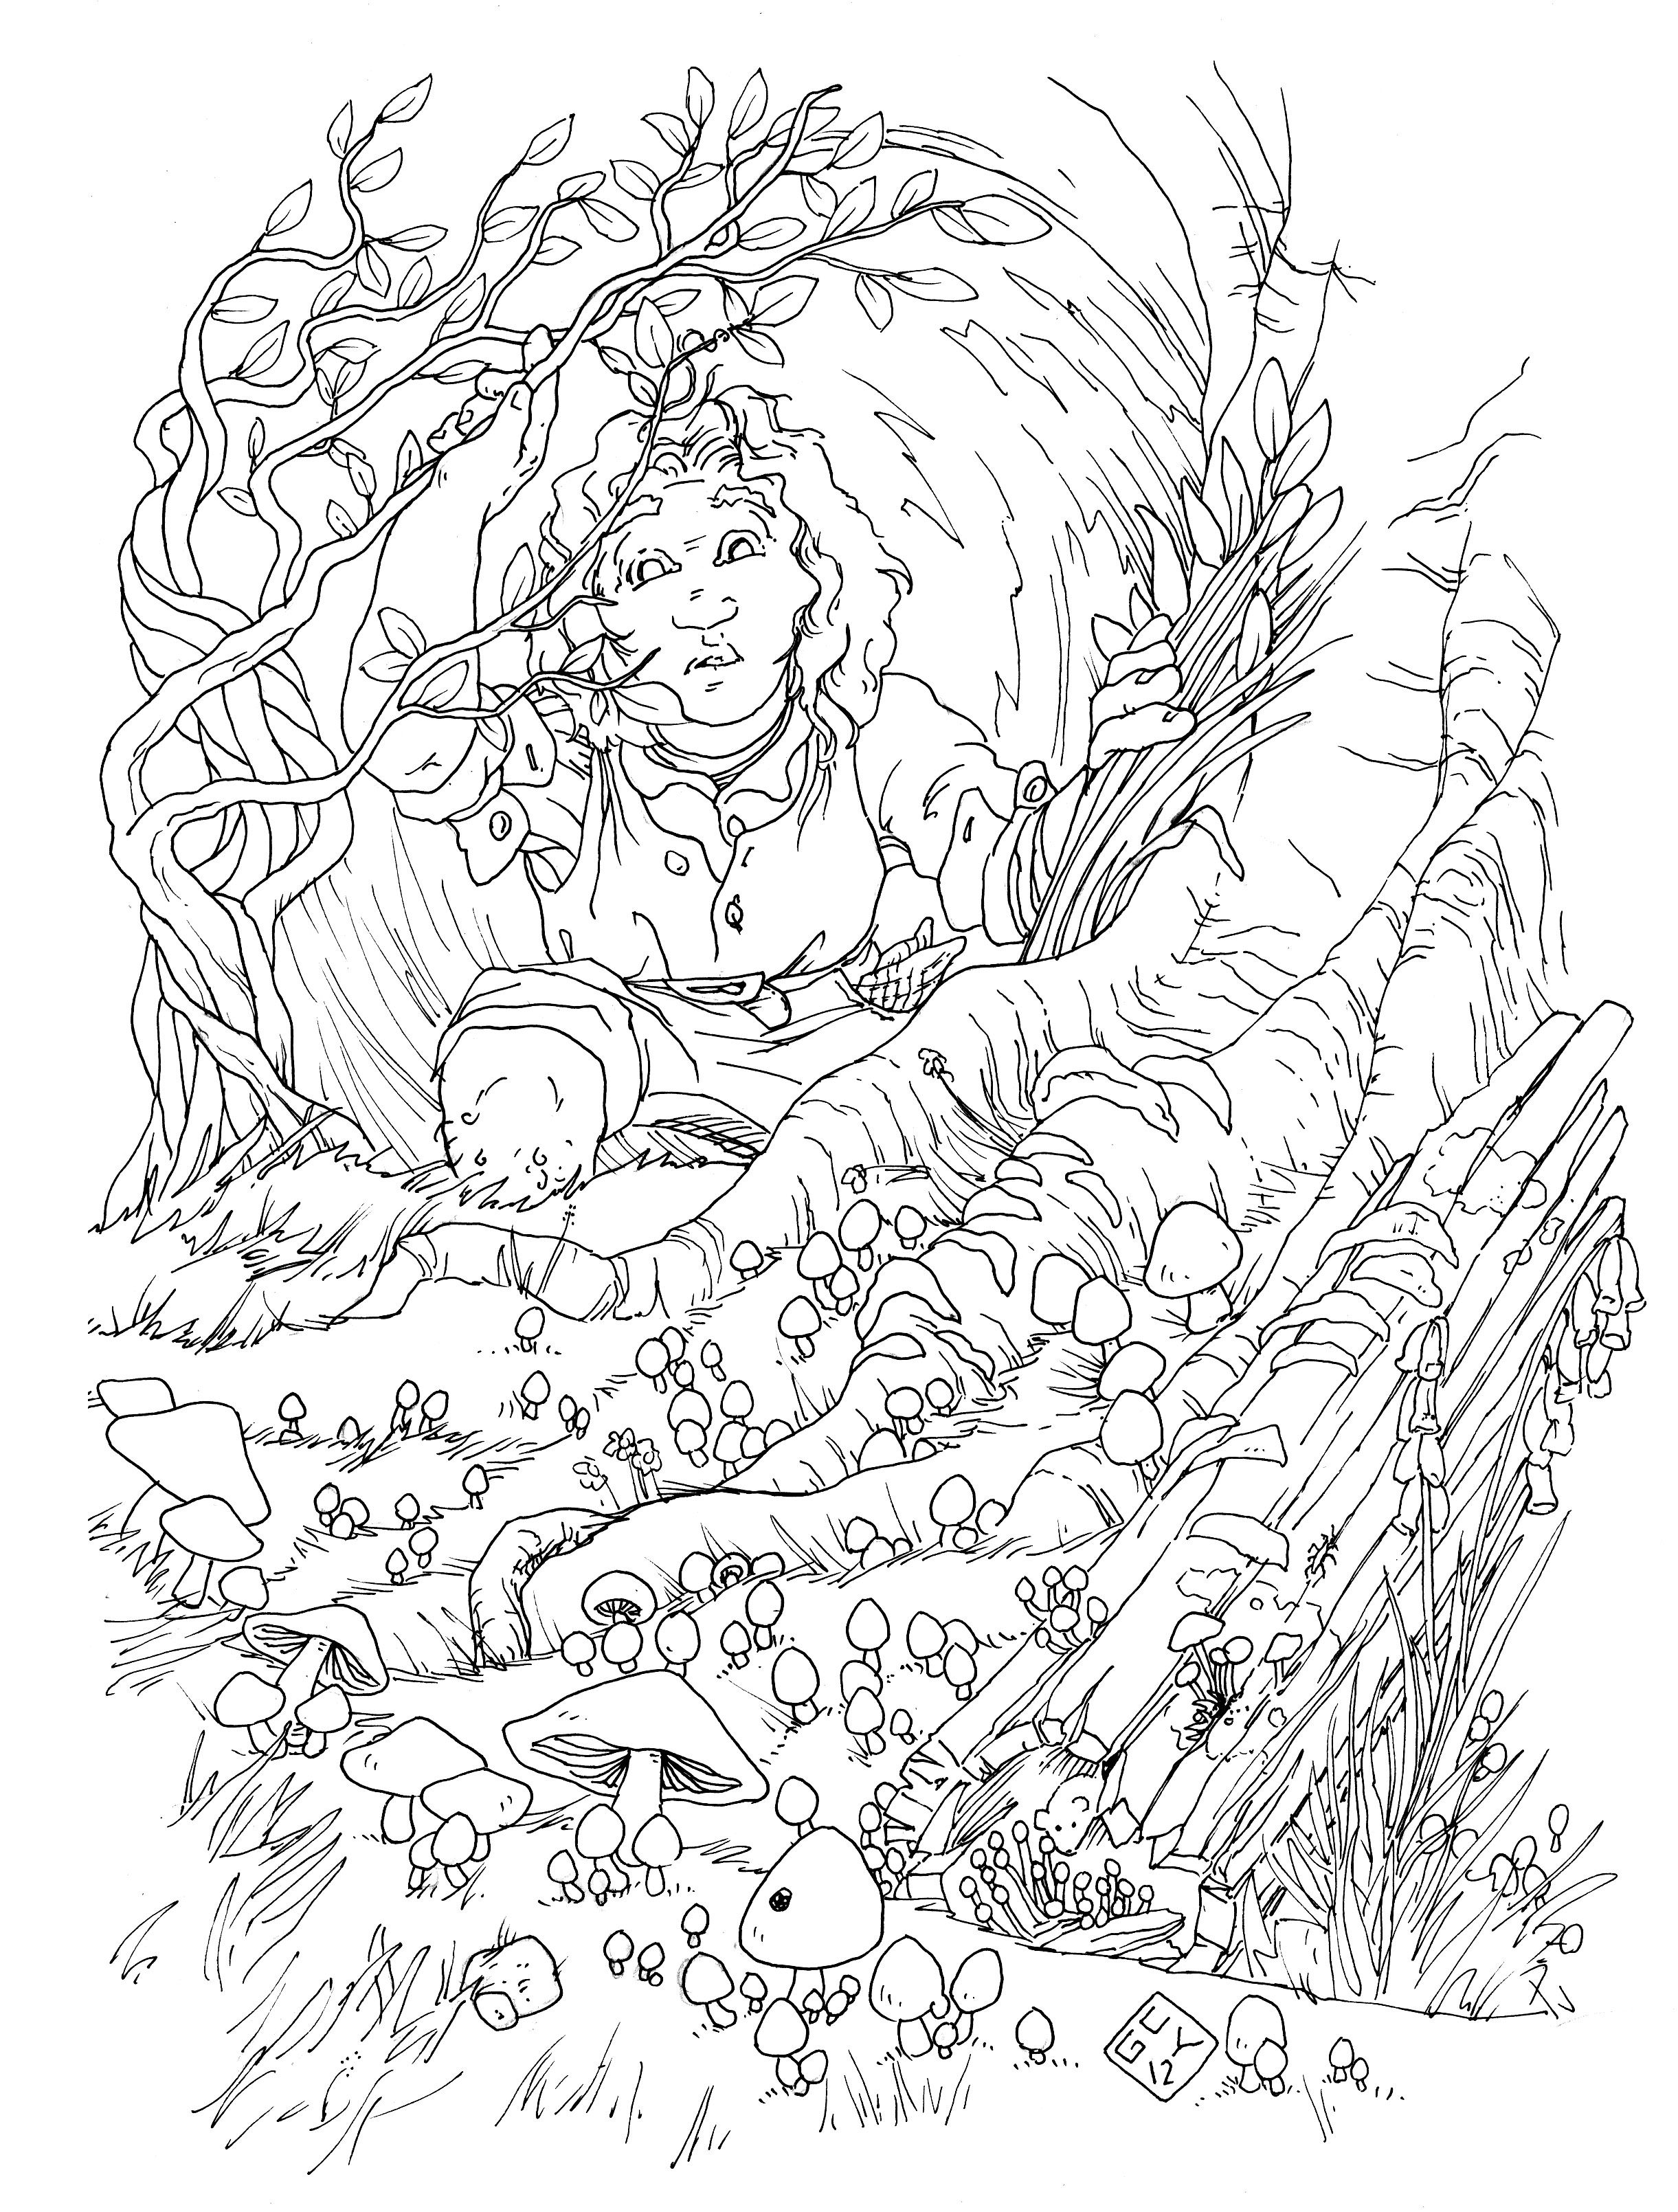 In A Hole In The Ground There Lived A Hobbit Coloring Pages Coloring Pages To Print Free Coloring Pages